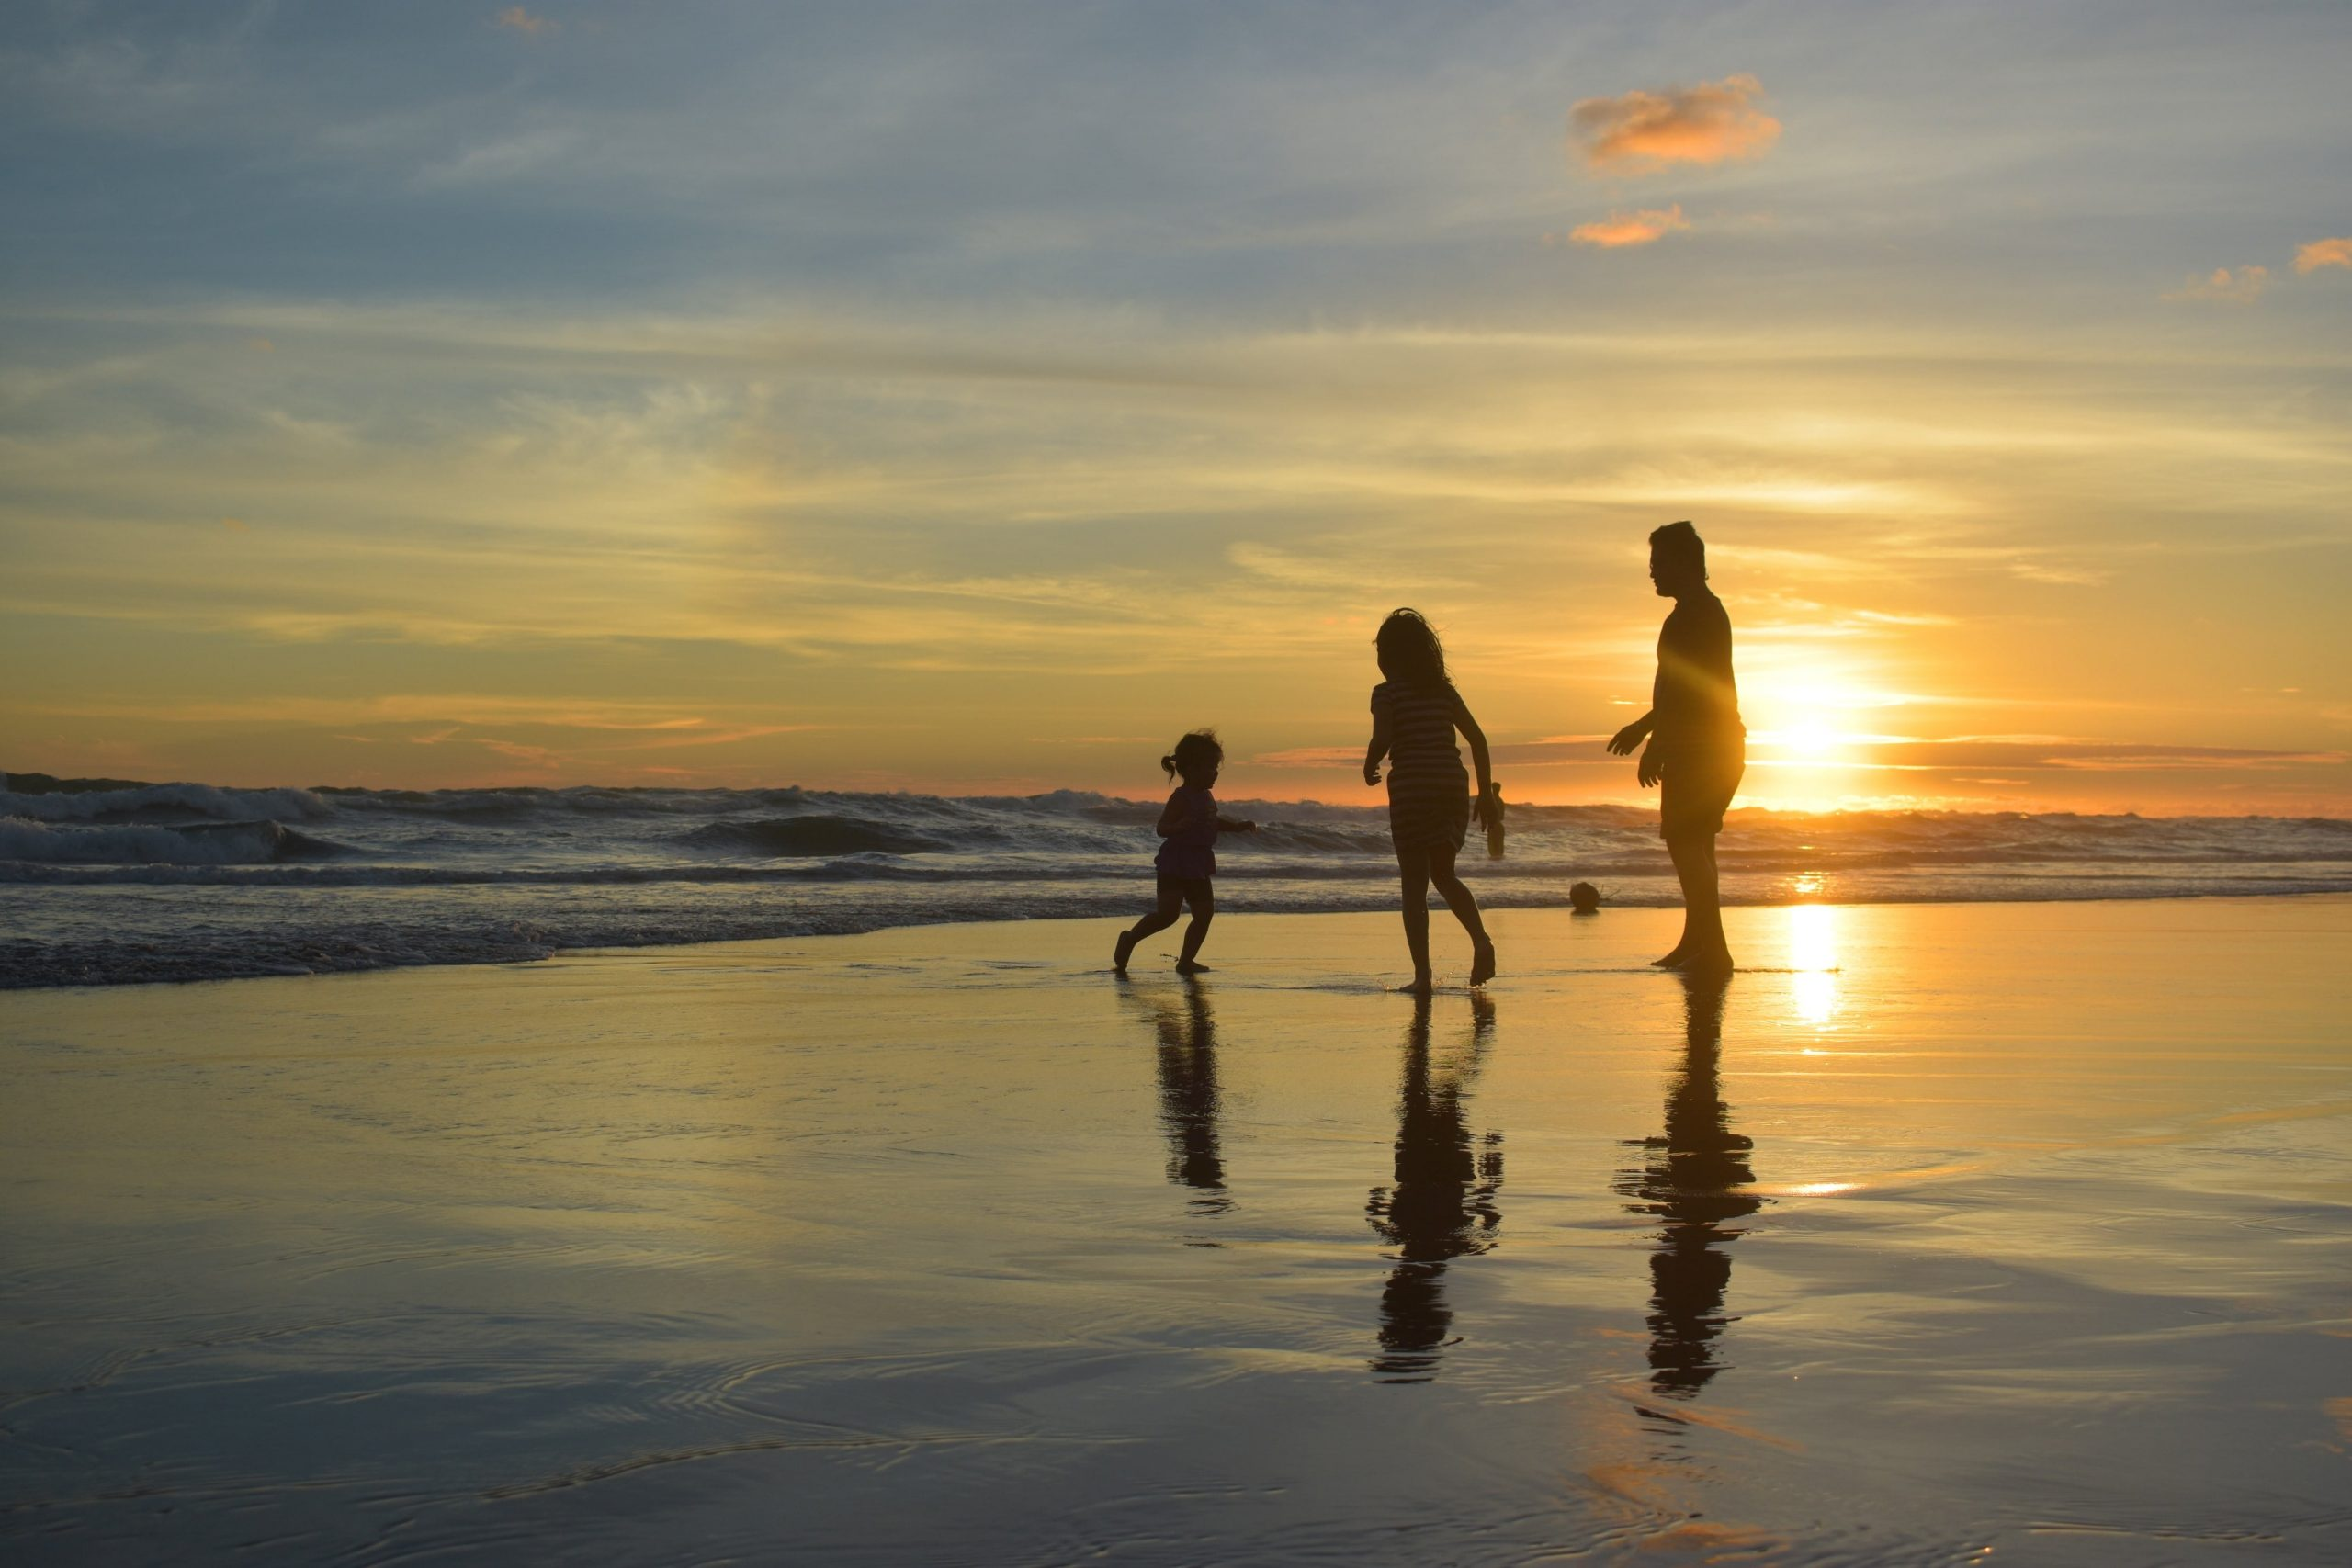 Image of a family of three, walking on the beach at sunset.